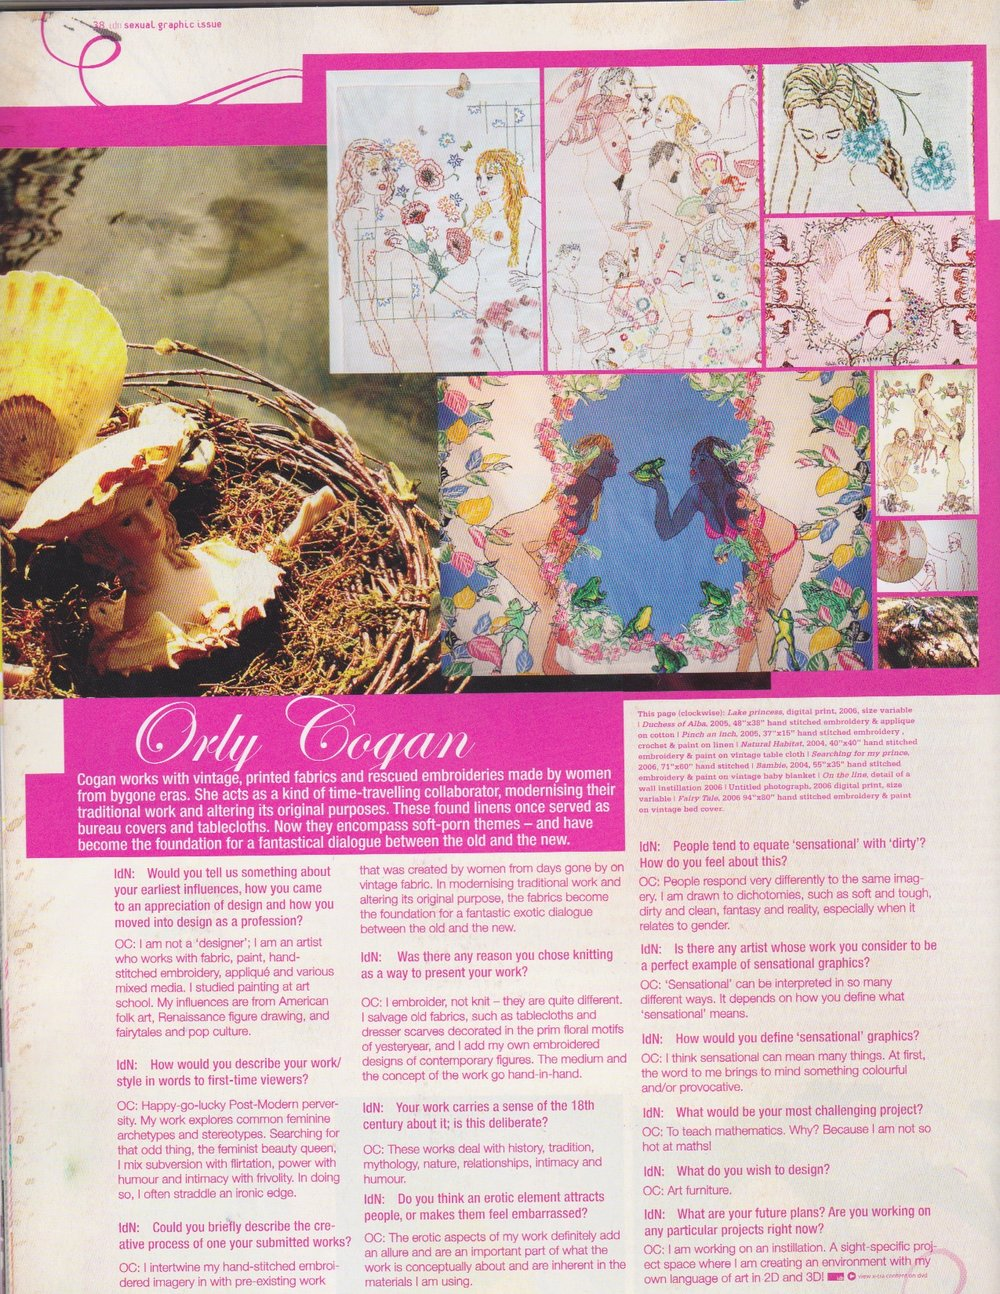 Candy Mag craft issue inside.jpeg